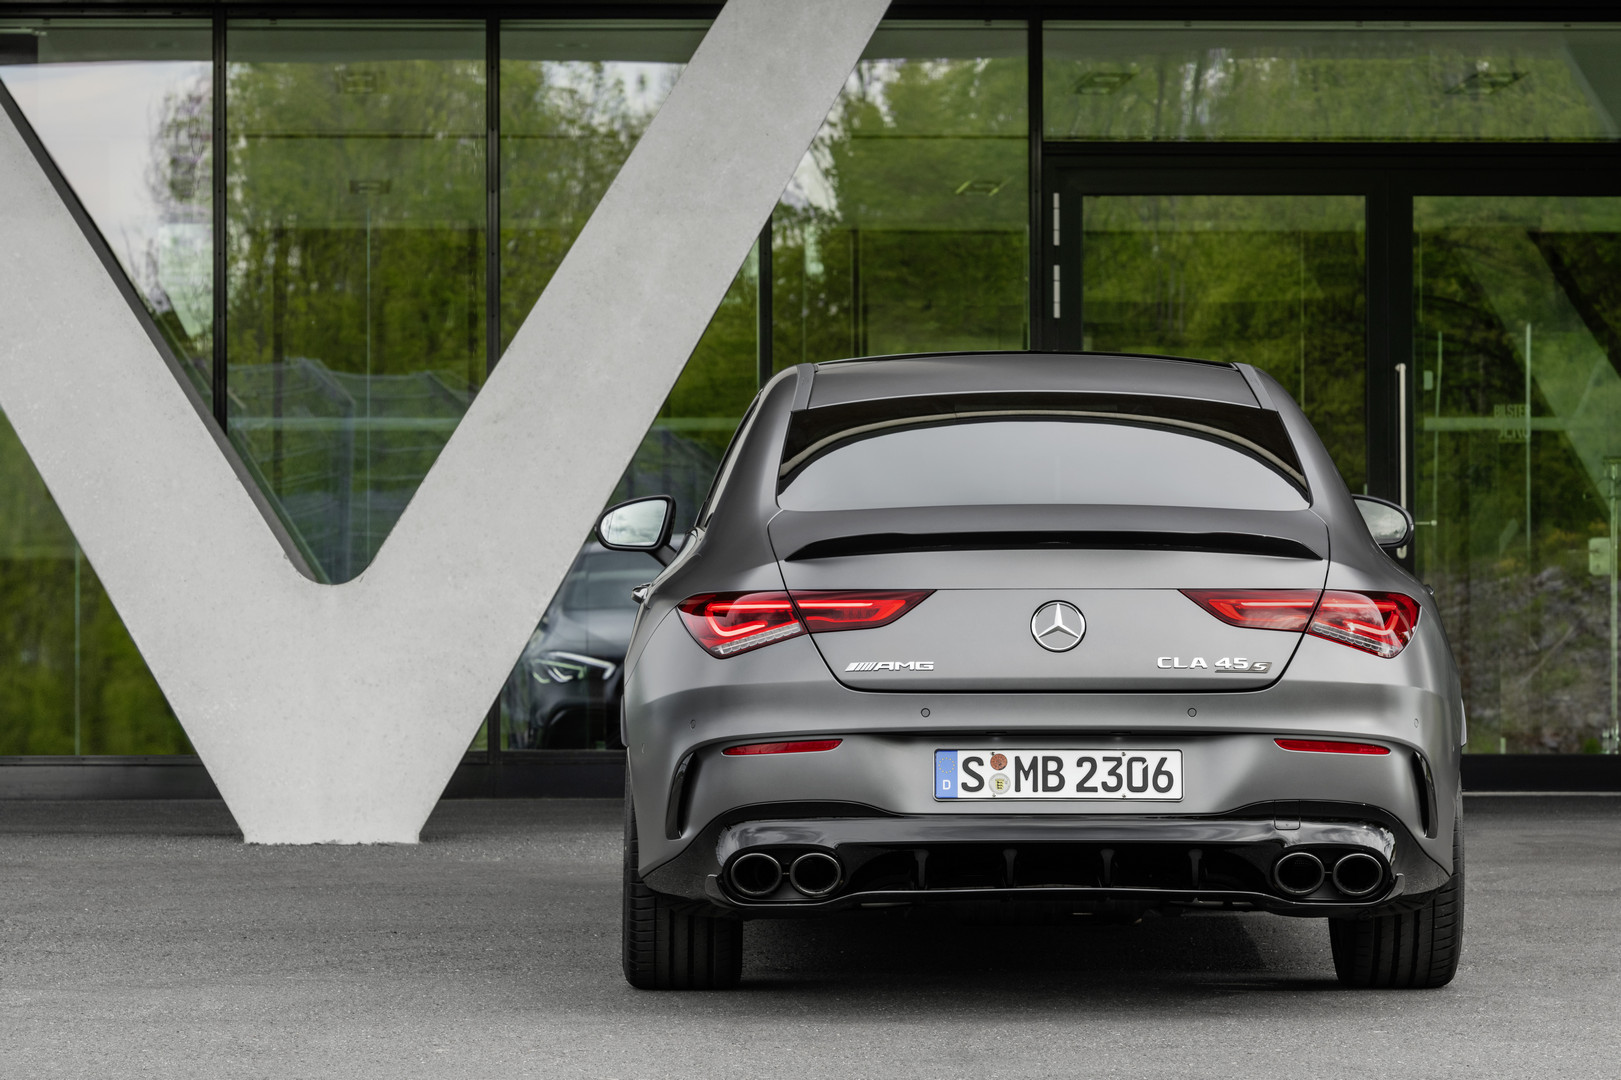 2020 Mercedes-AMG CLA 45 S Rear Lights